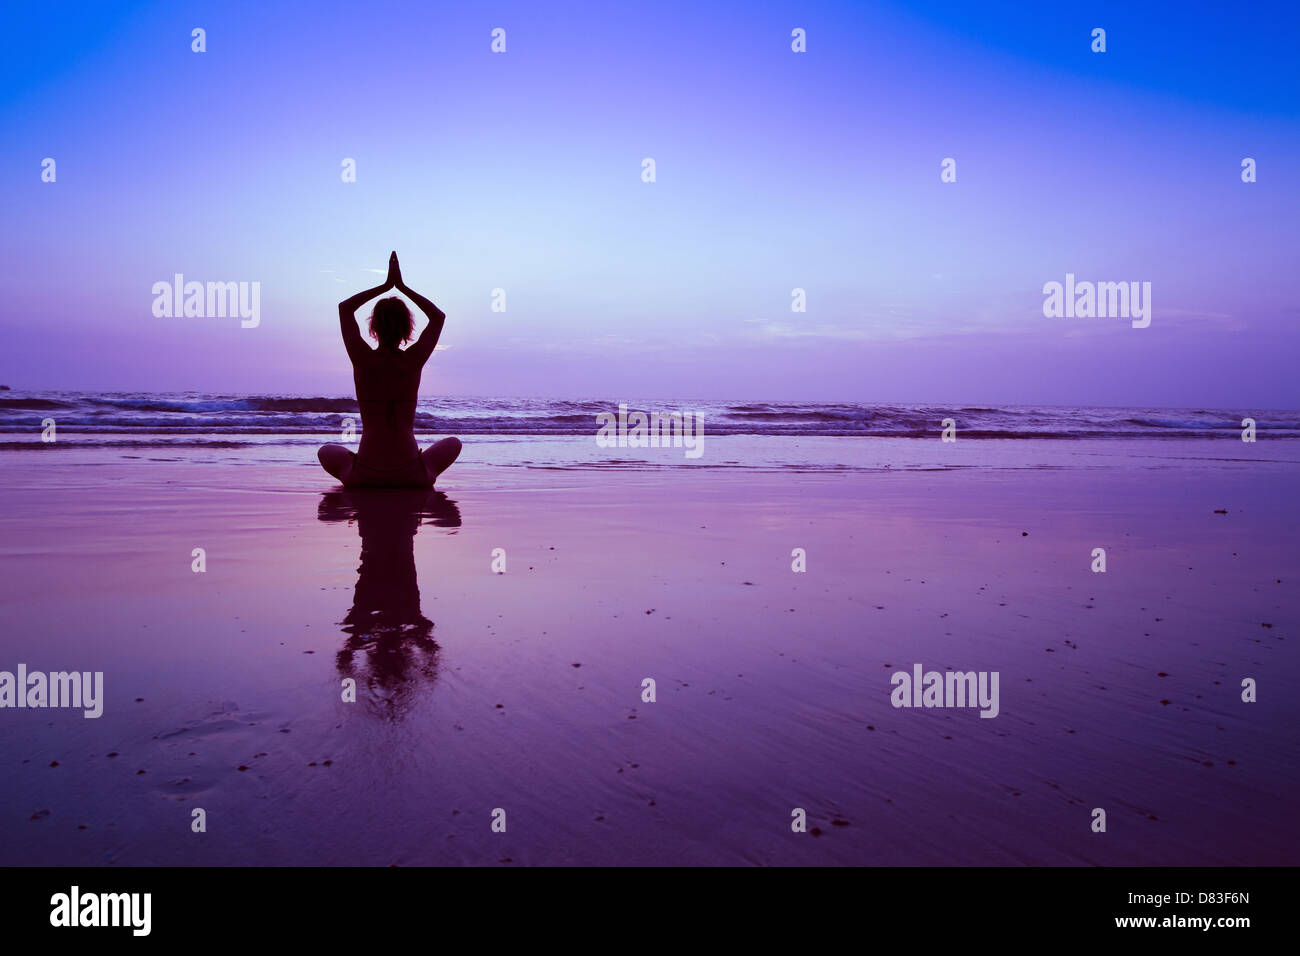 yoga on the beach, meditation - Stock Image